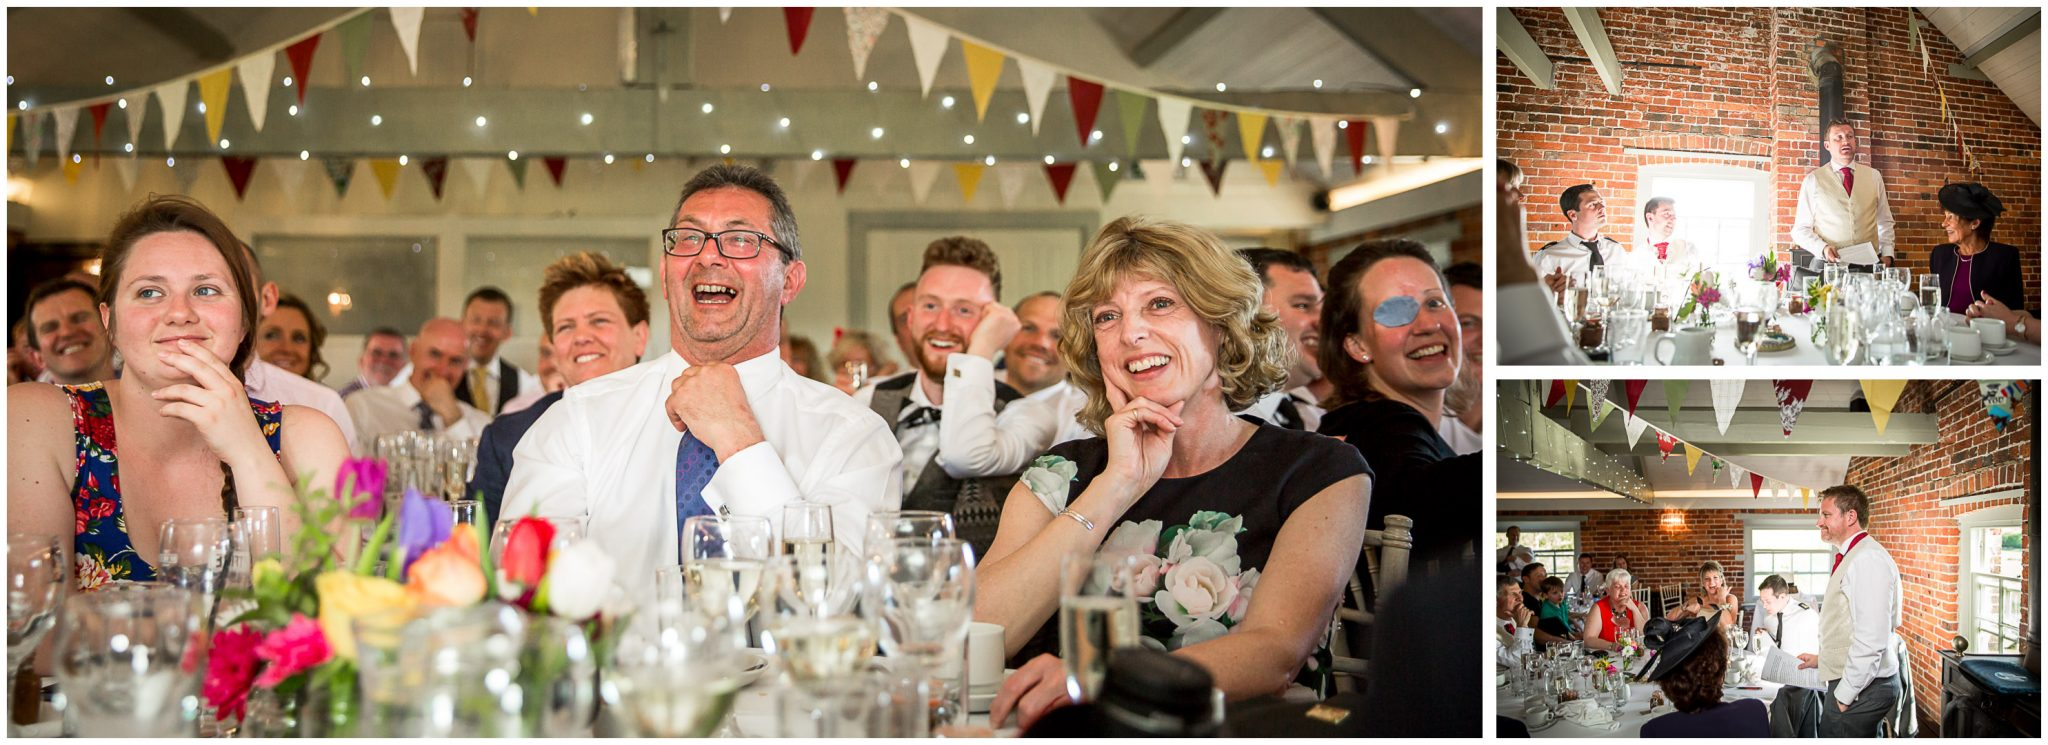 Sopley wedding photographer guest reactions